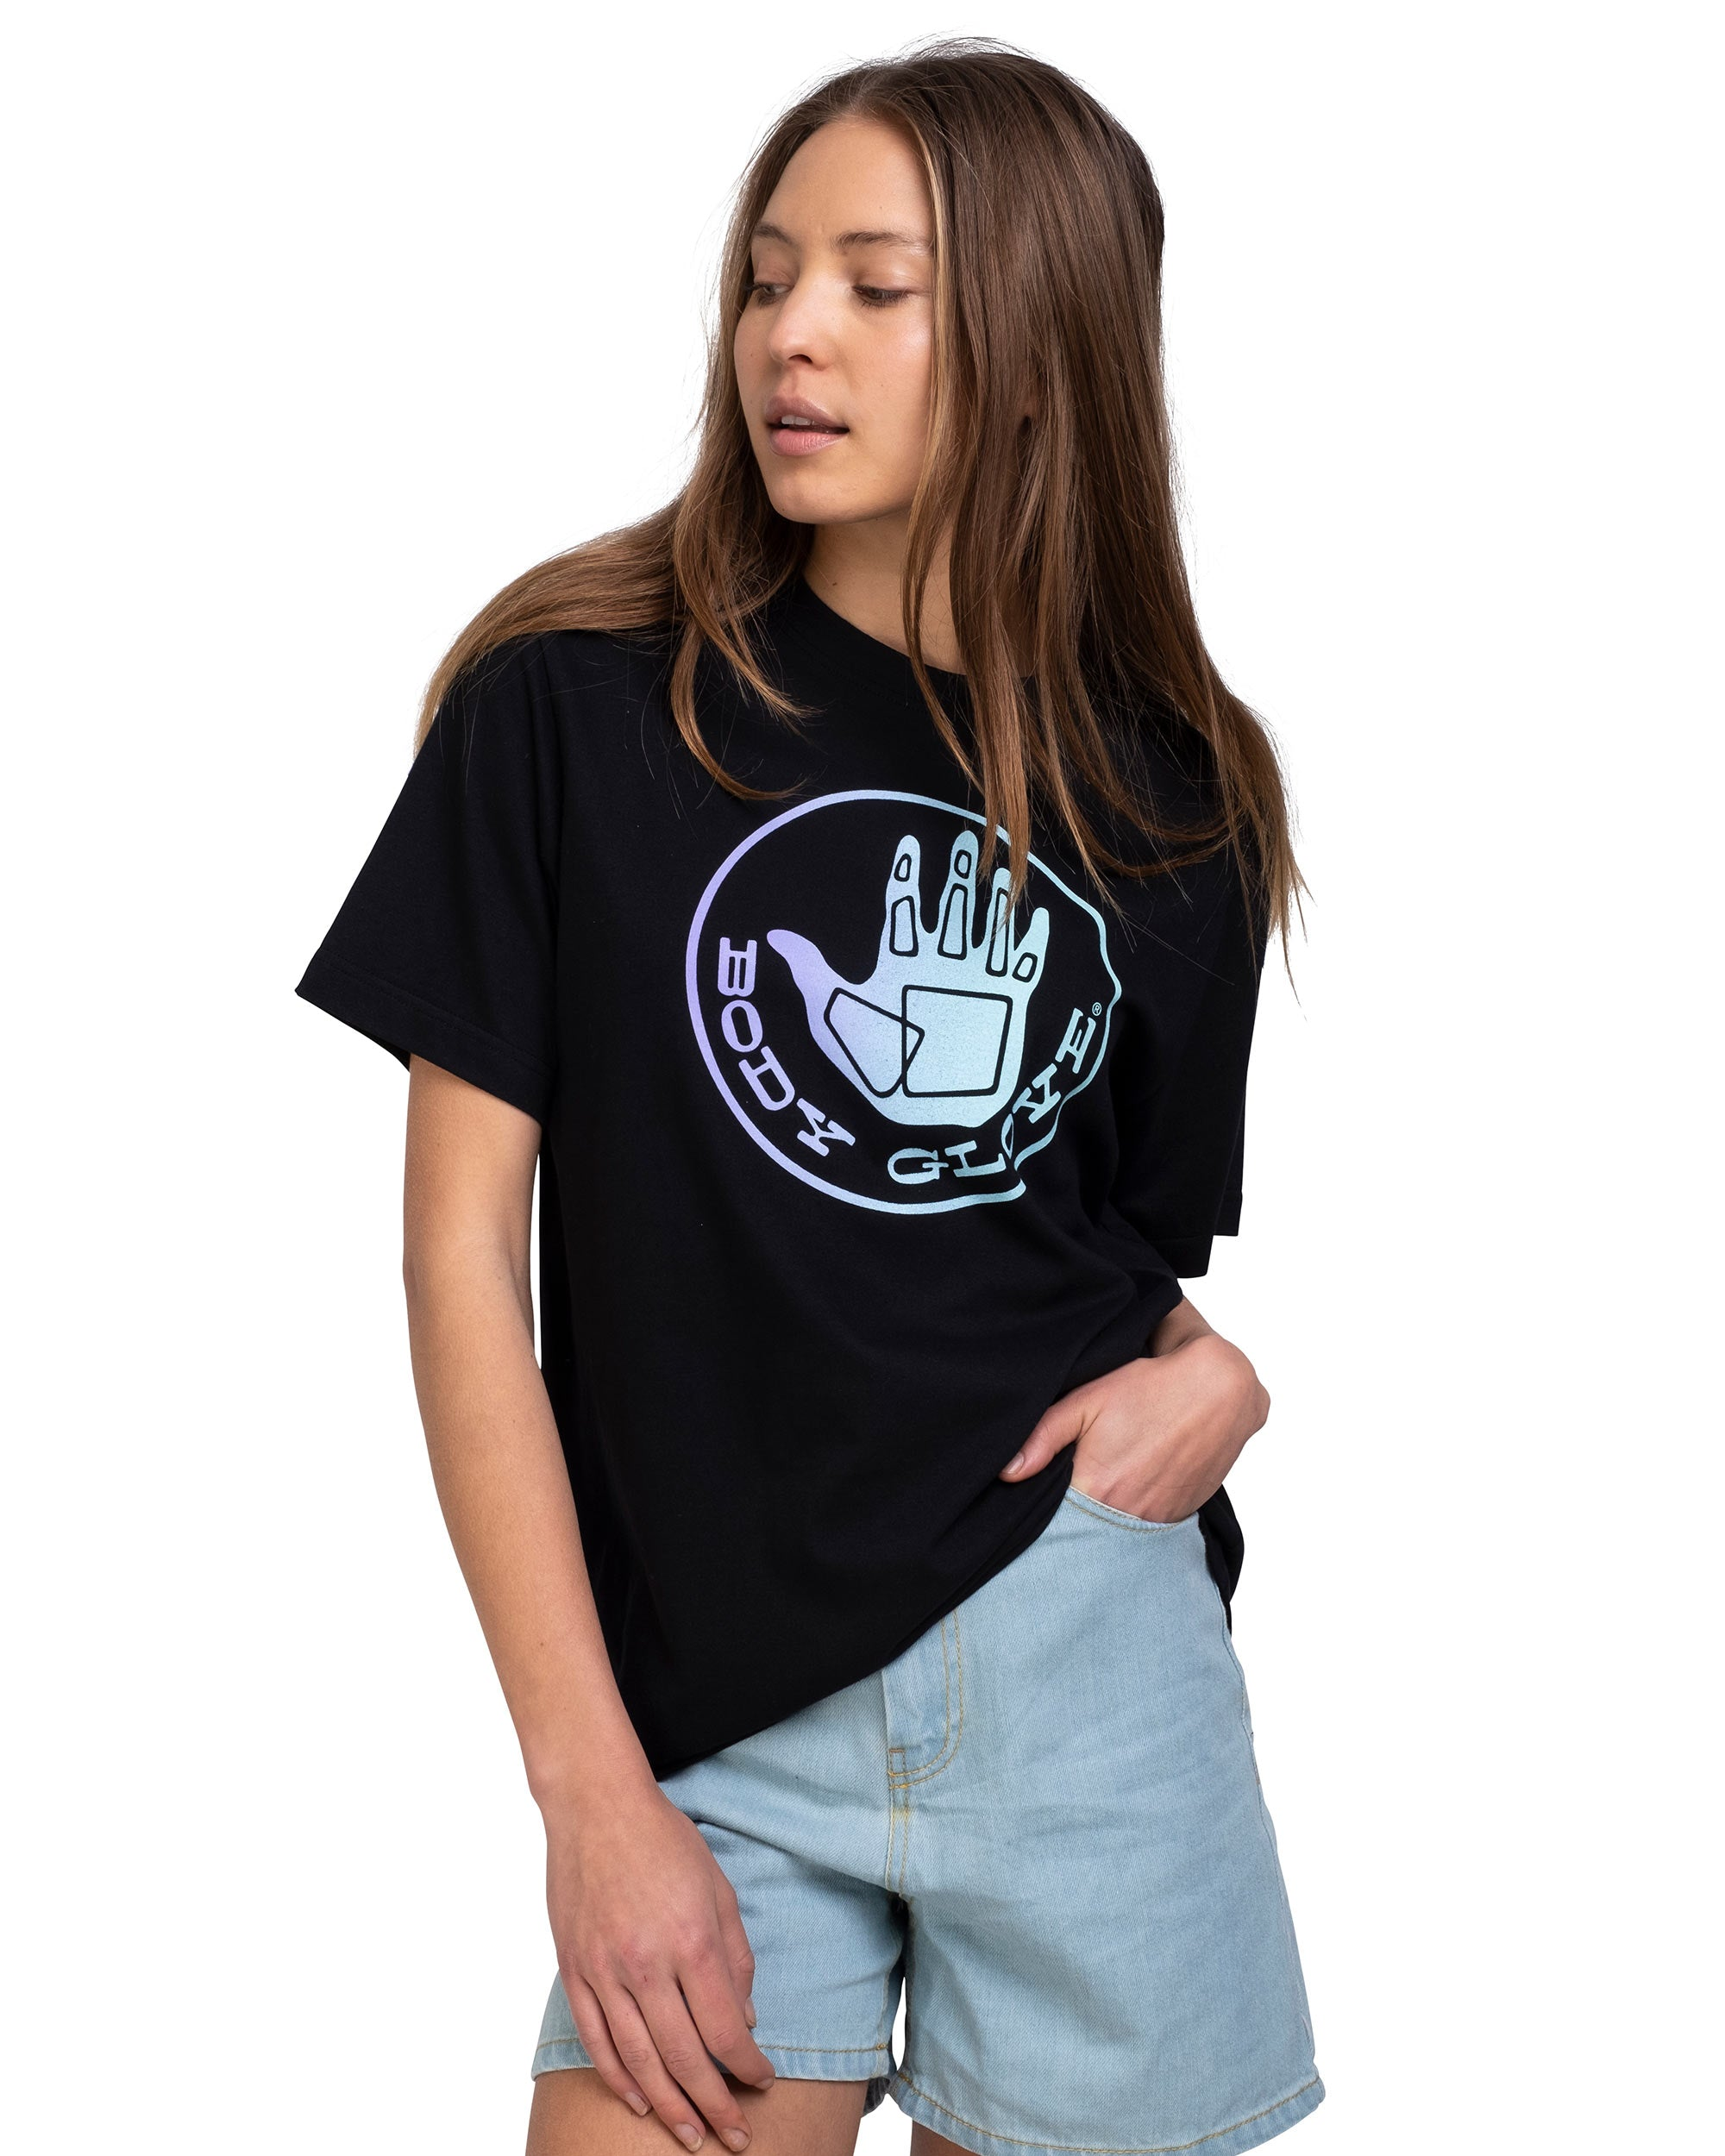 Women's California T-Shirt - Black